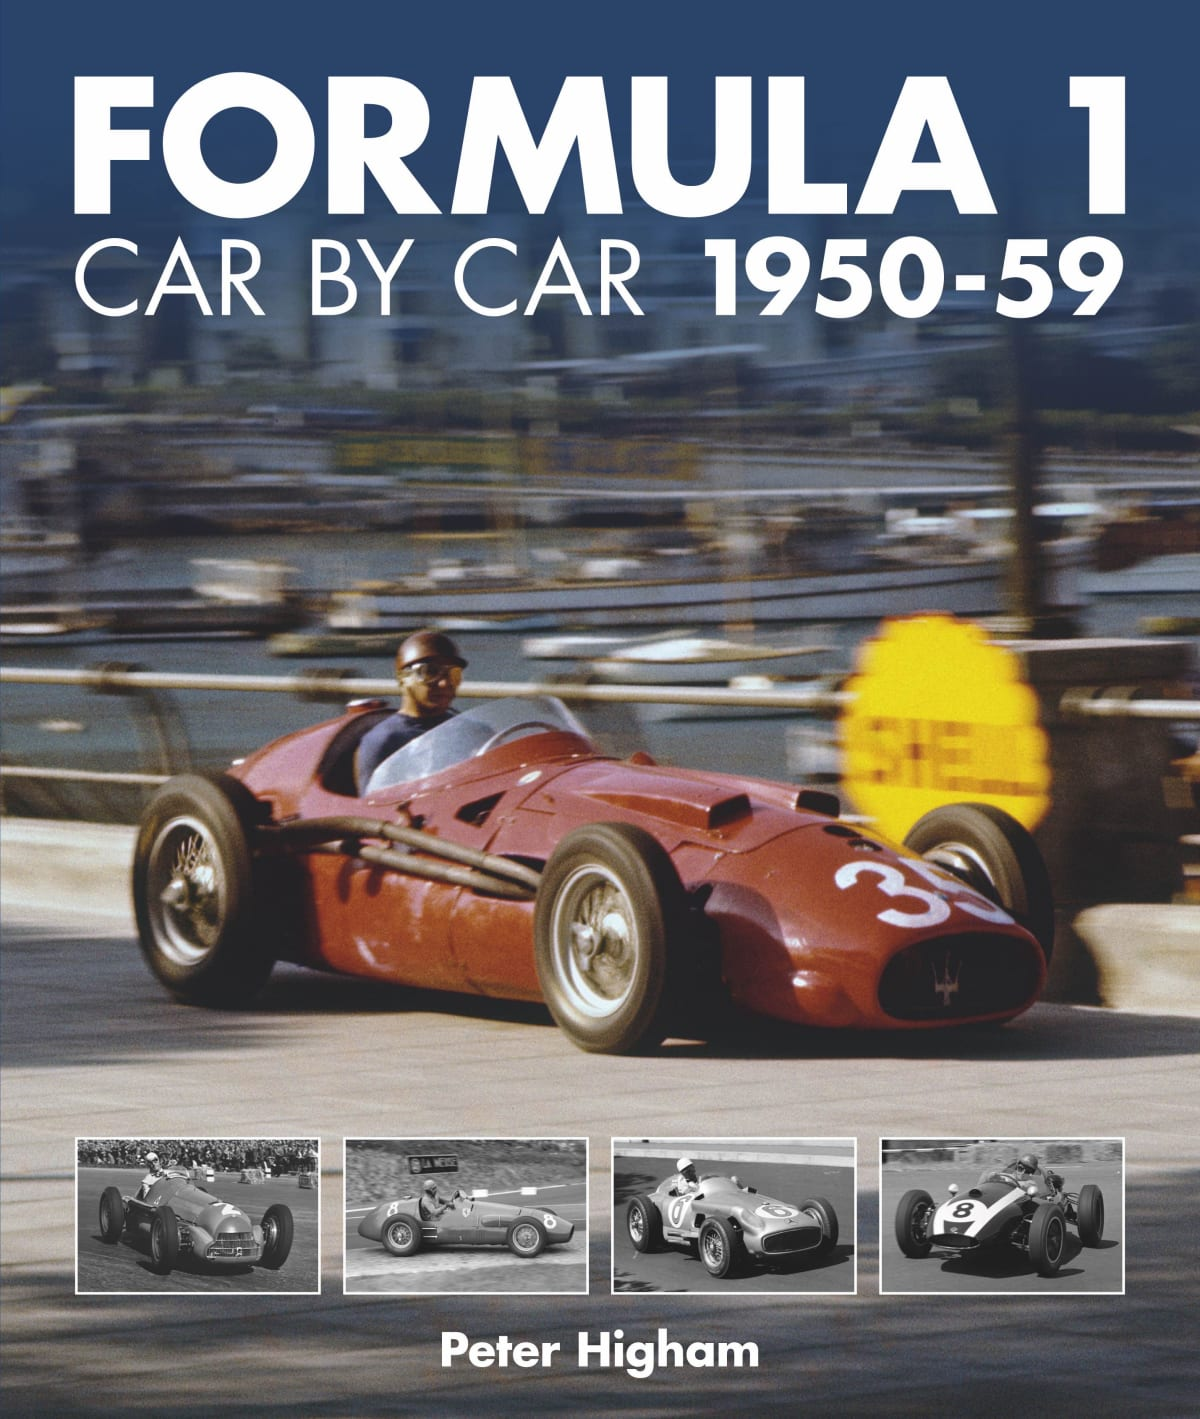 Formula 1: Car by Car 1950-59 cover featuring the legendary Fangio